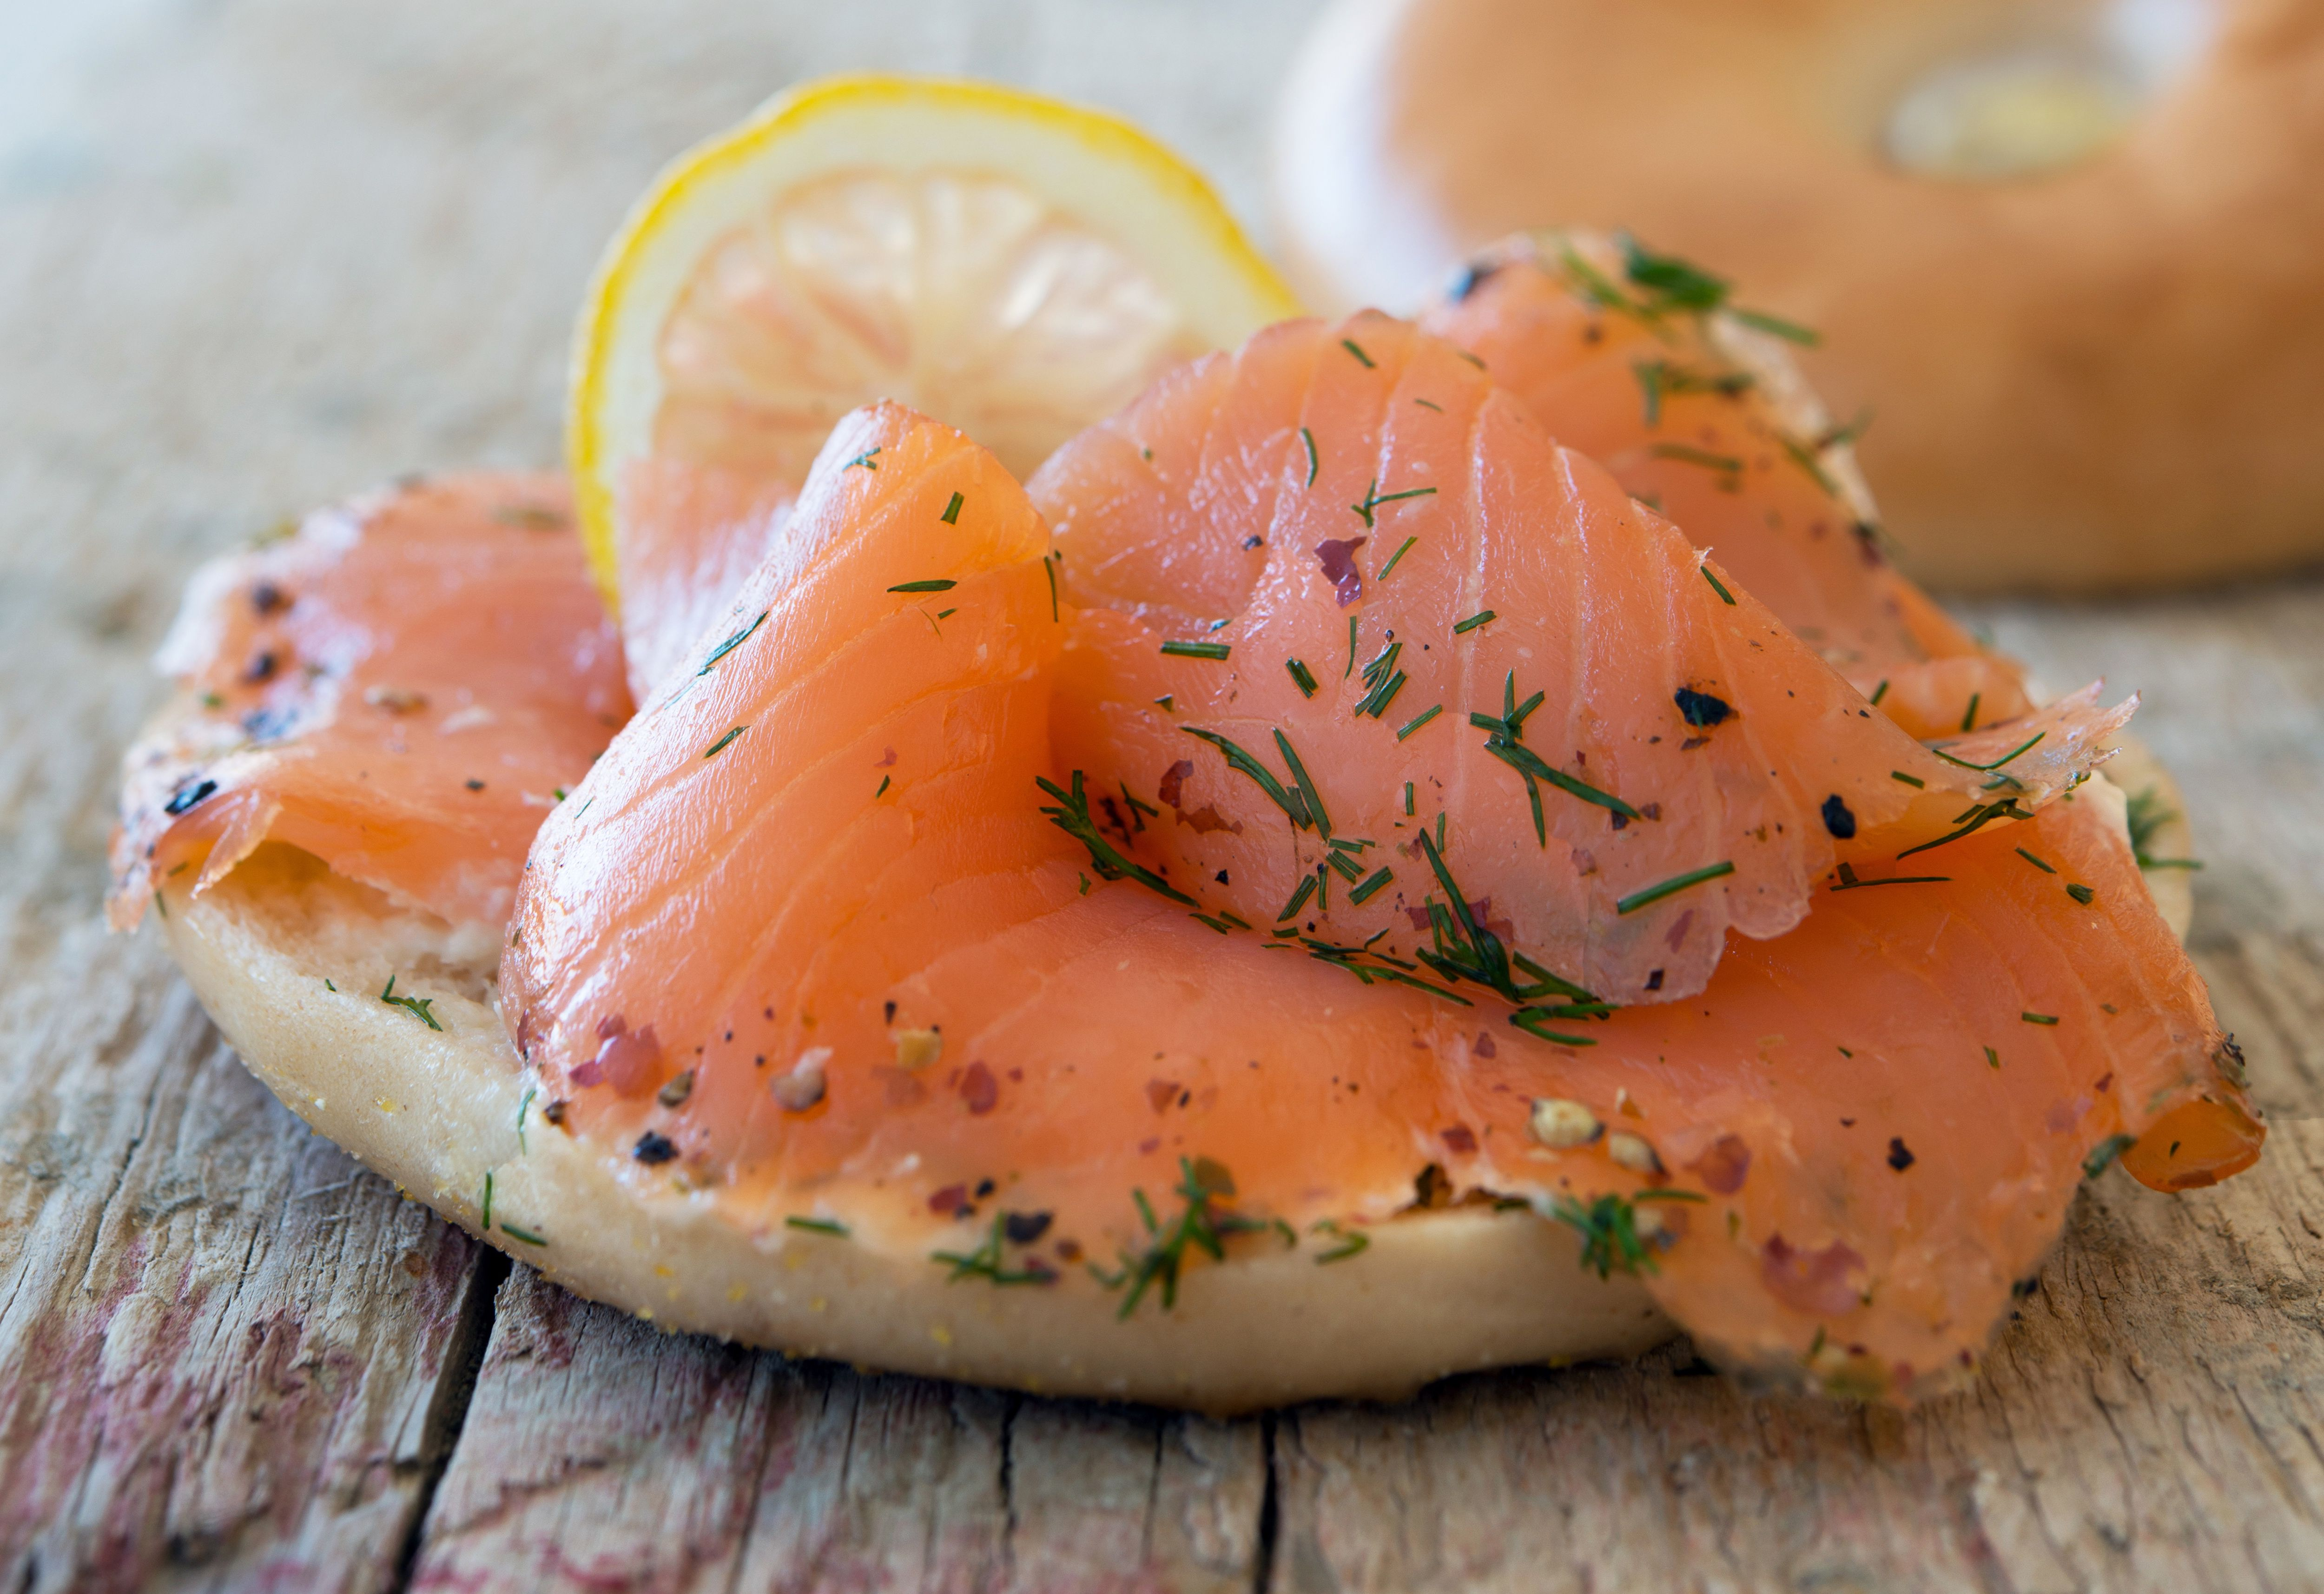 Learn How to Make Lox